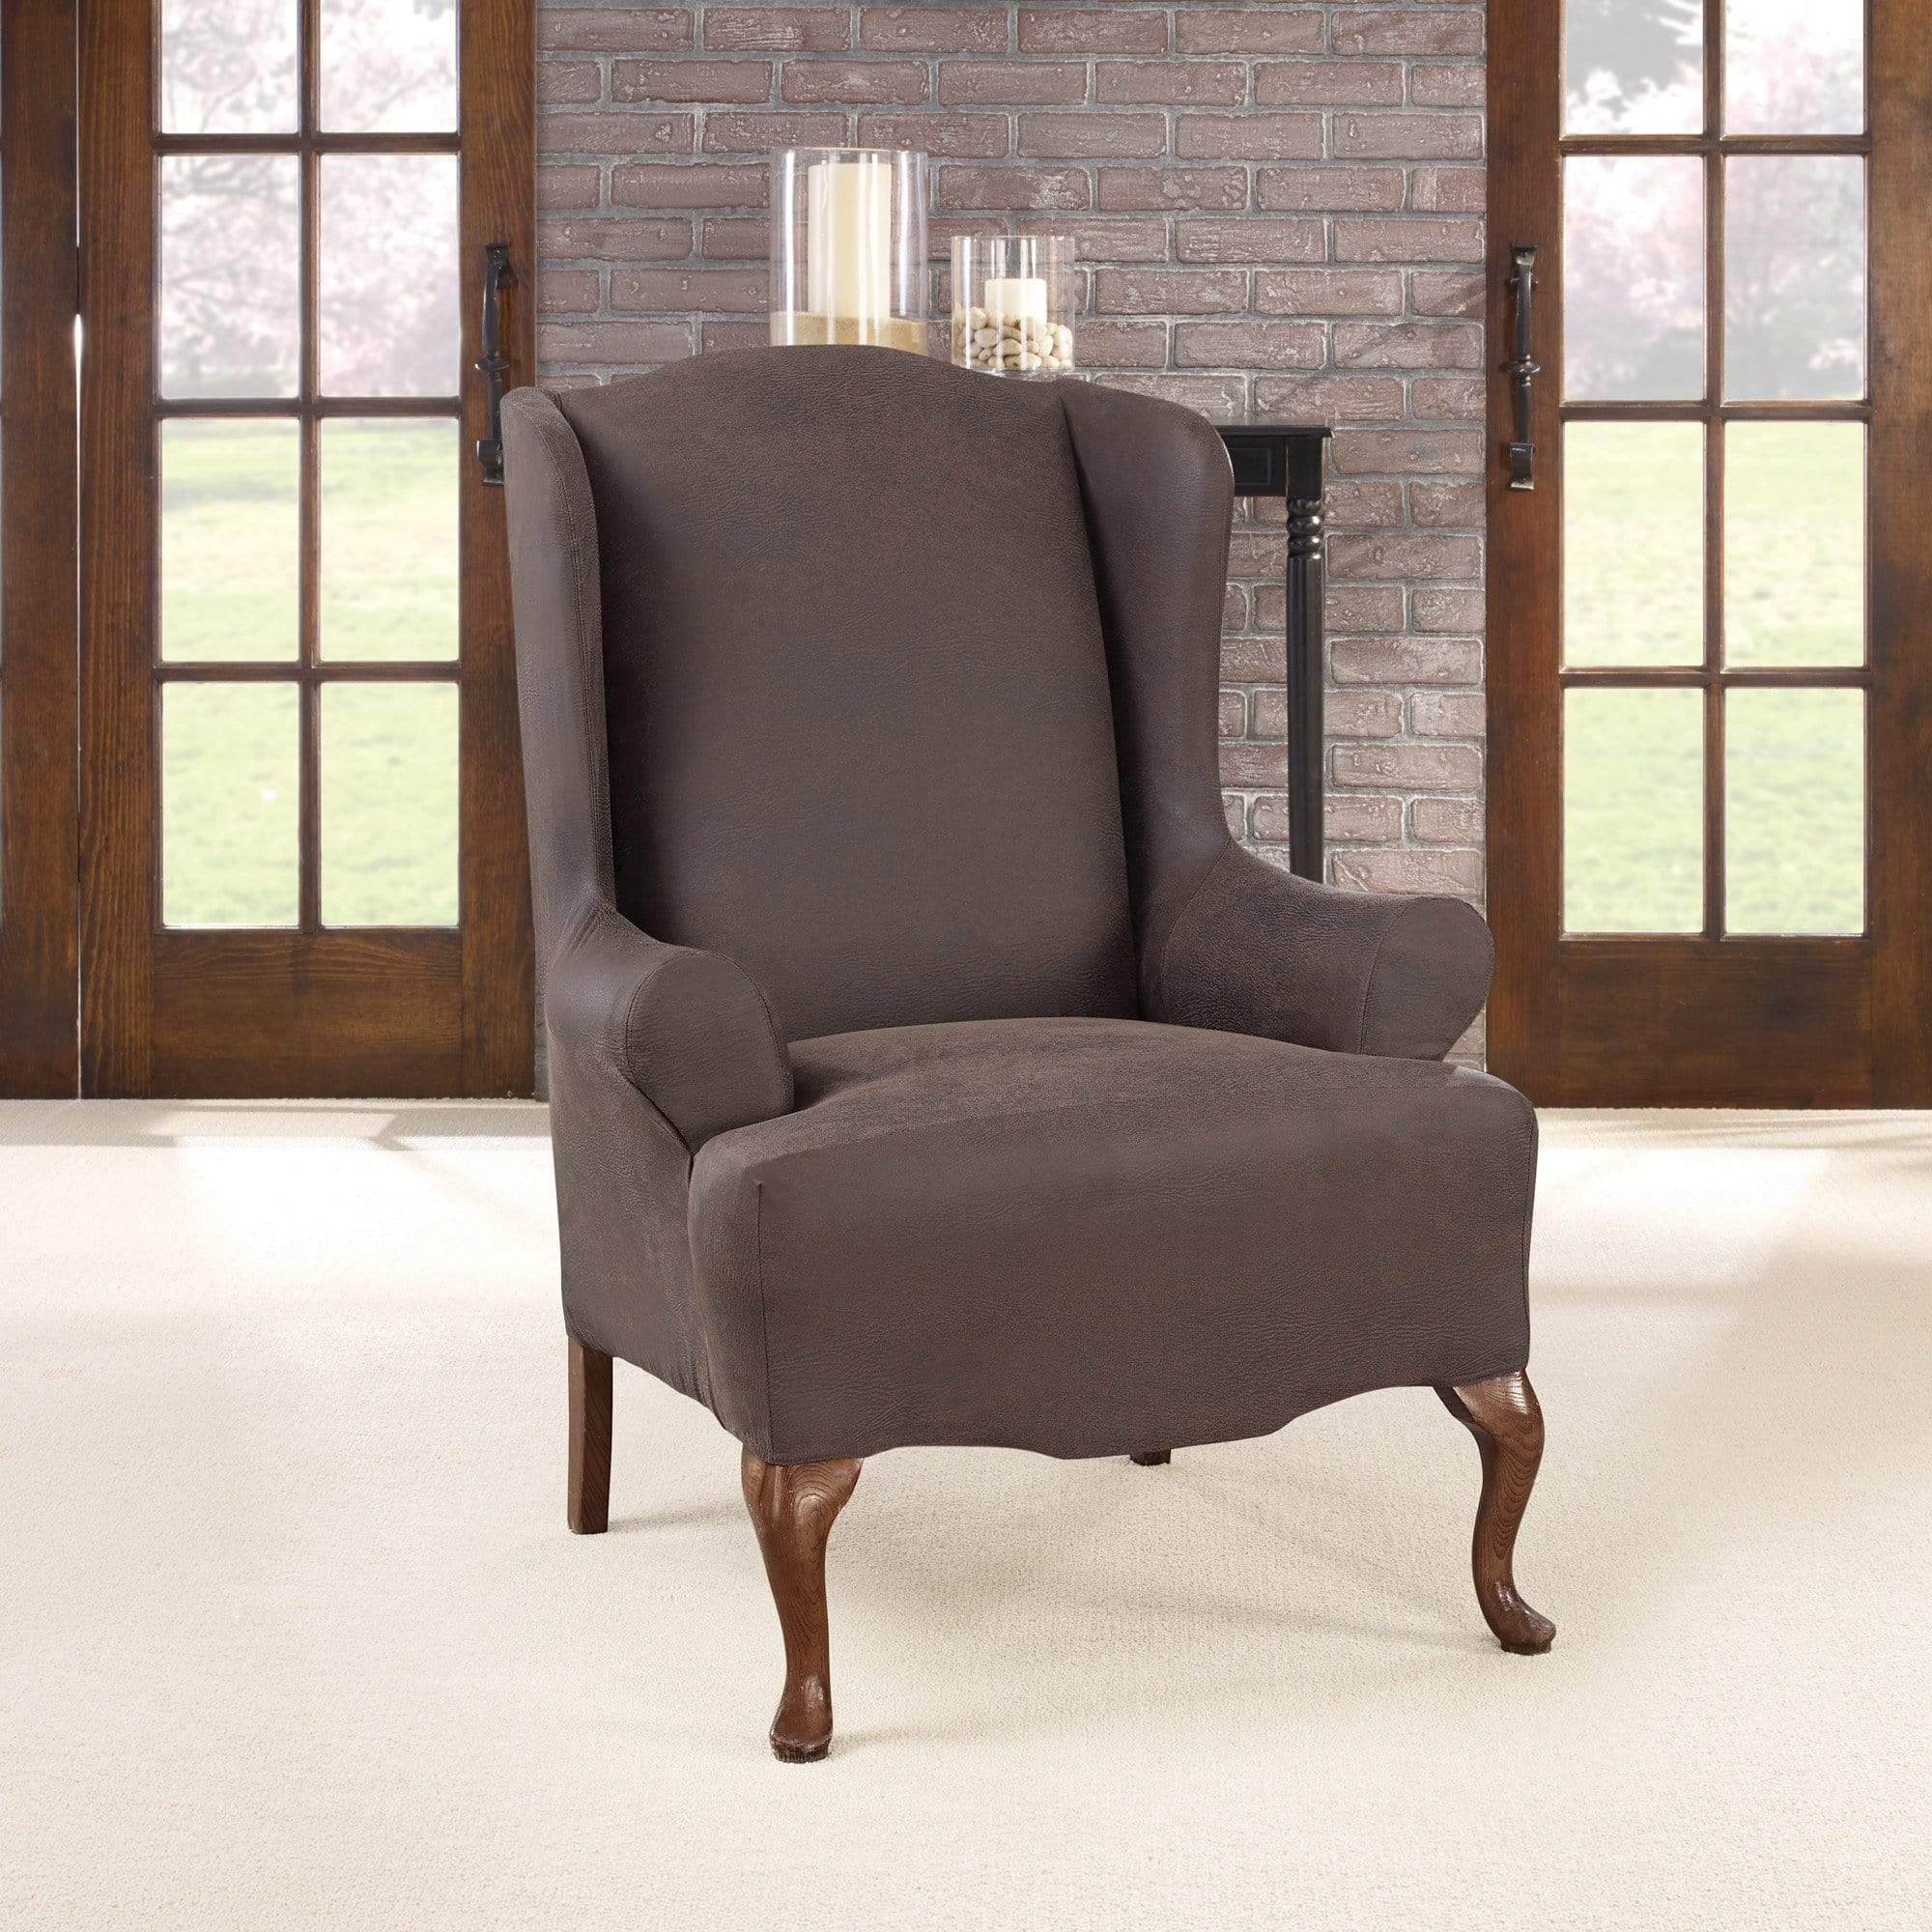 Ultimate Stretch Leather One Piece Wing Chair Slipcover Form Fit Machine Washable Slipcovers For Chairs Leather Wing Chair Slipcovers